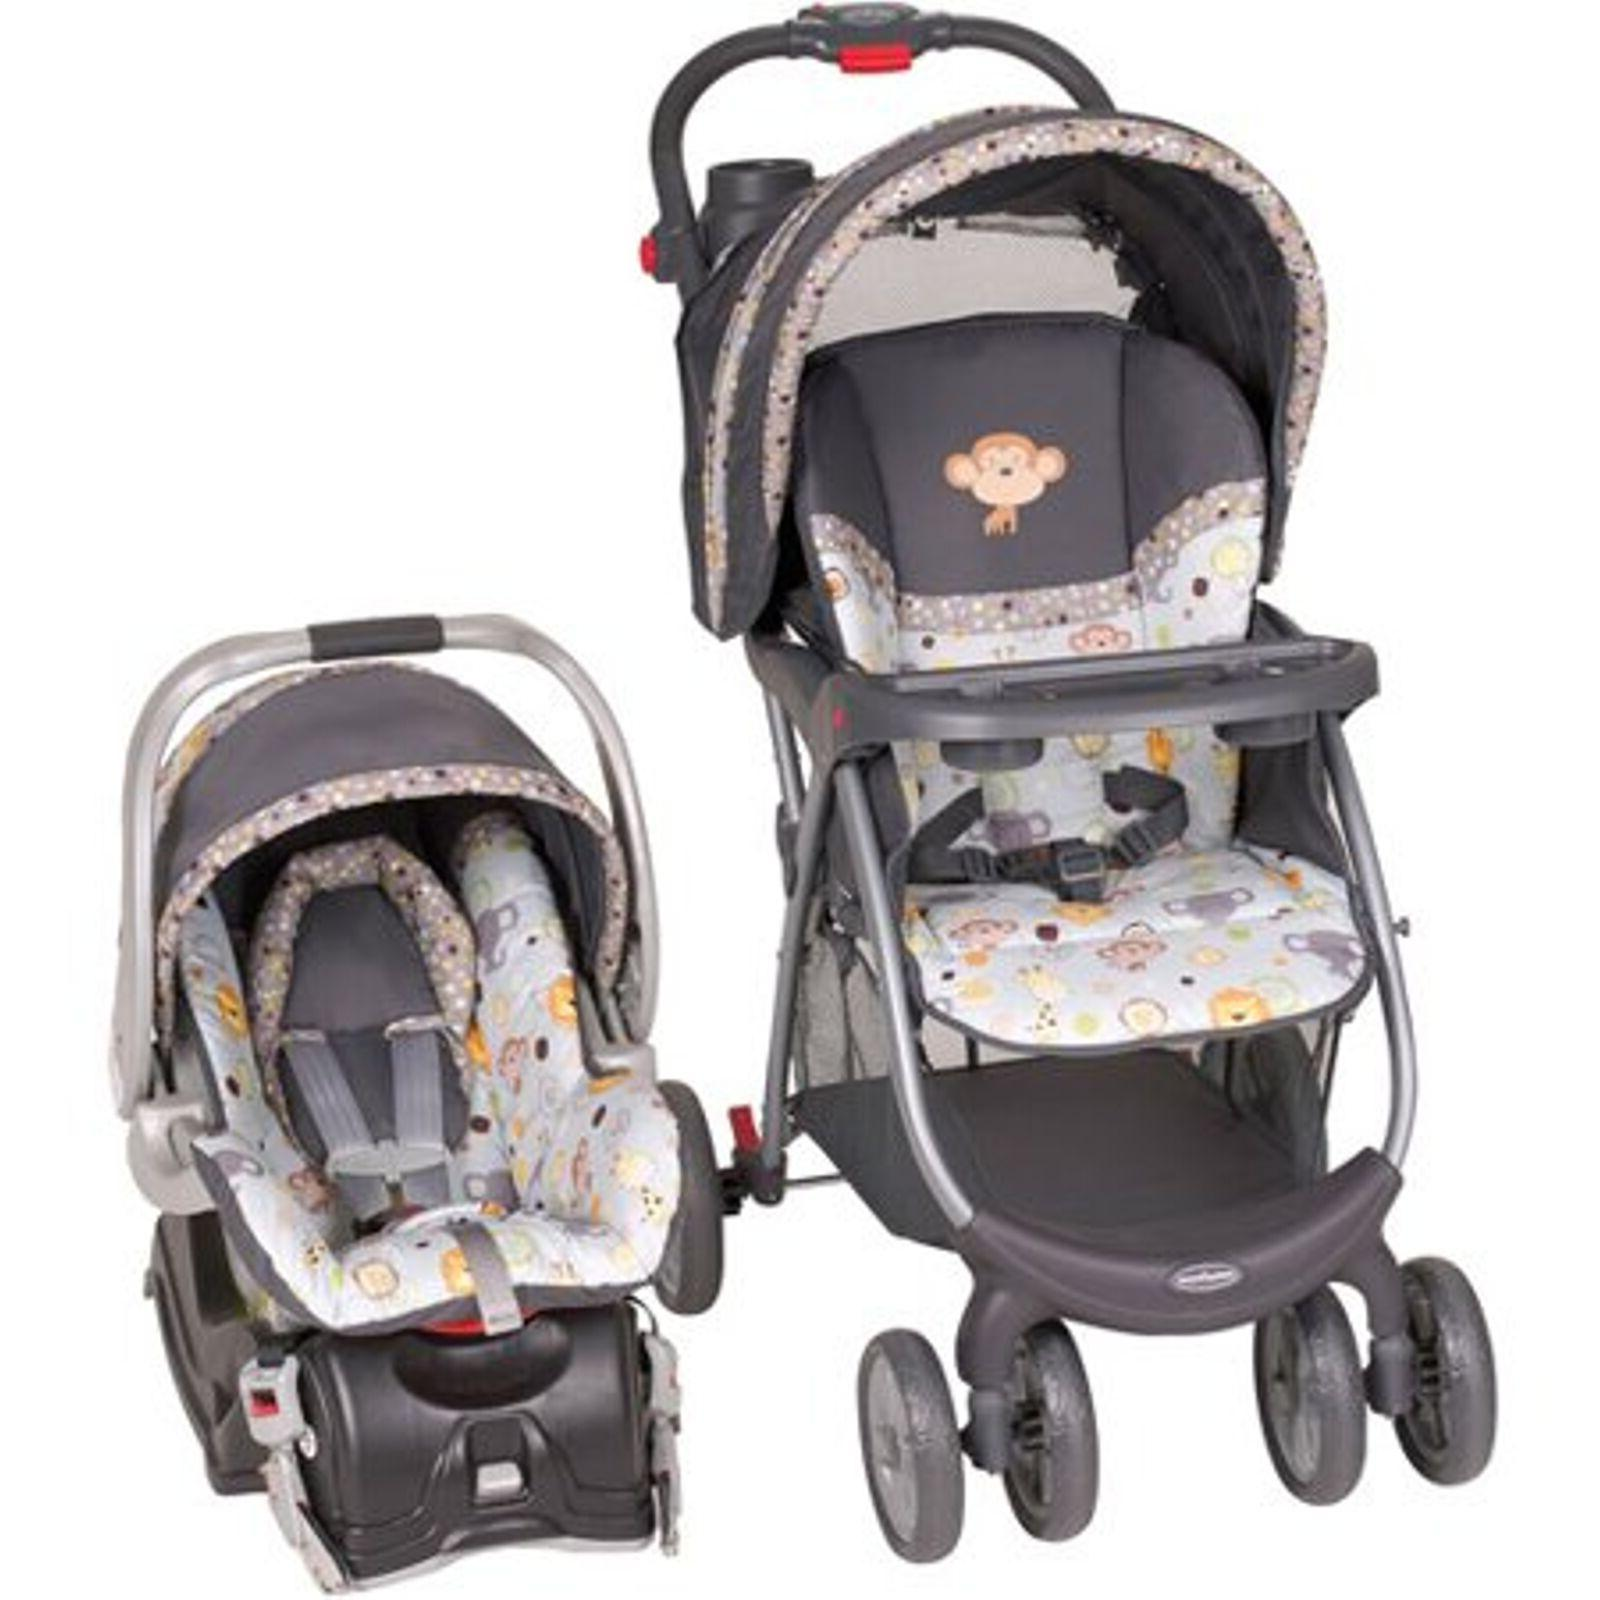 envy travel system car seat infant carriage